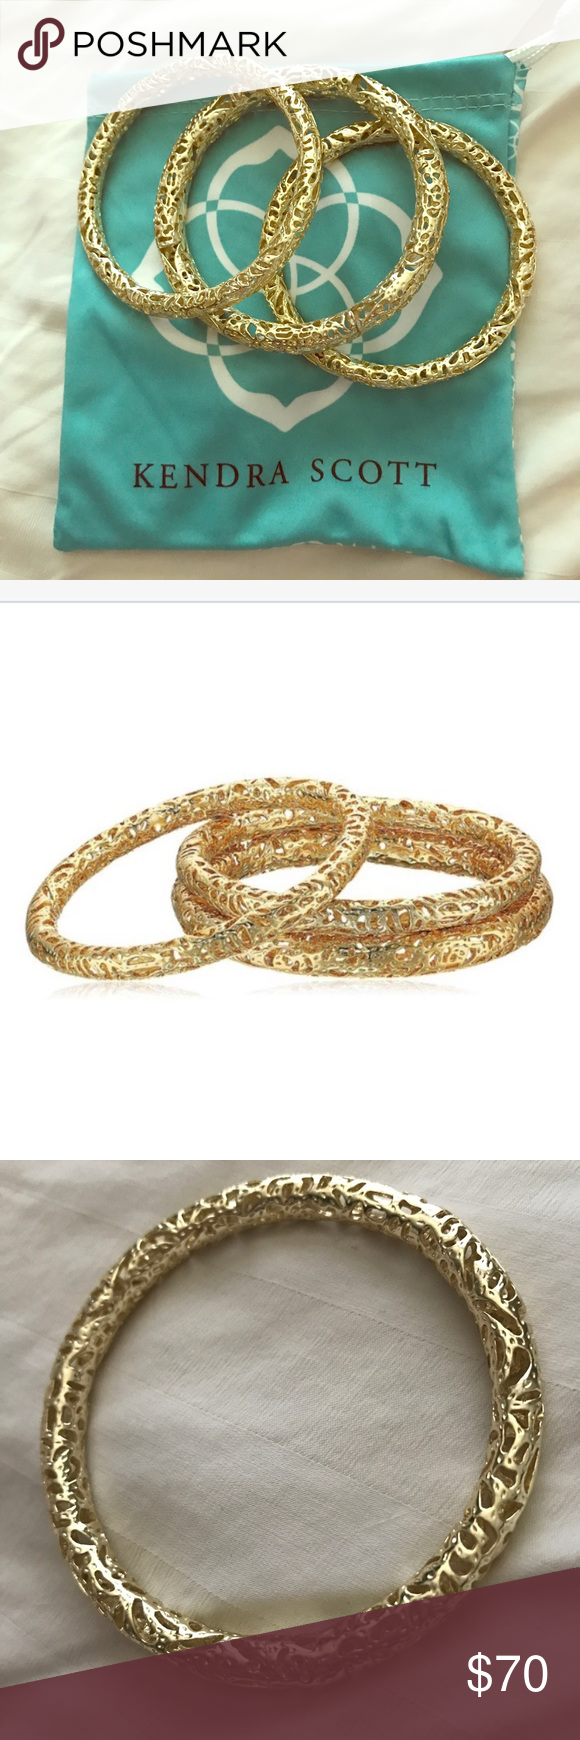 Sold kendra scott lucca bracelets lucca gold bangles and